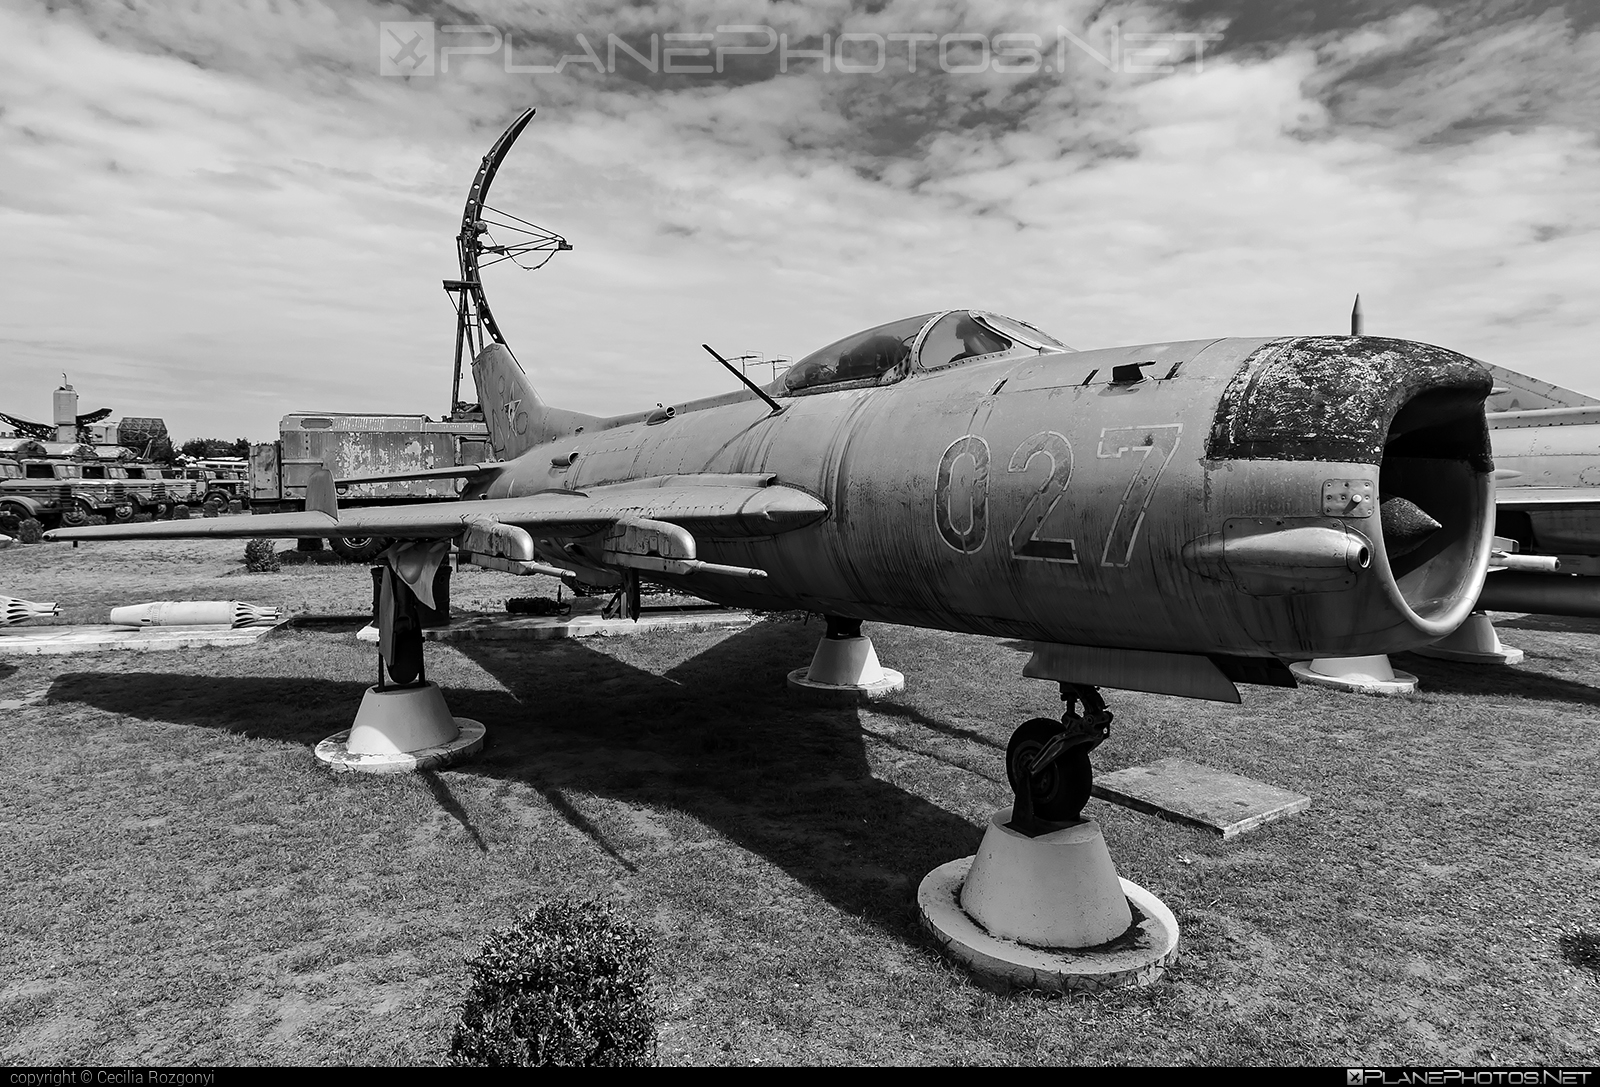 Mikoyan-Gurevich MiG-19PM - 027 operated by Magyar Néphadsereg (Hungarian People's Army) #hungarianpeoplesarmy #magyarnephadsereg #mig #mikoyangurevich